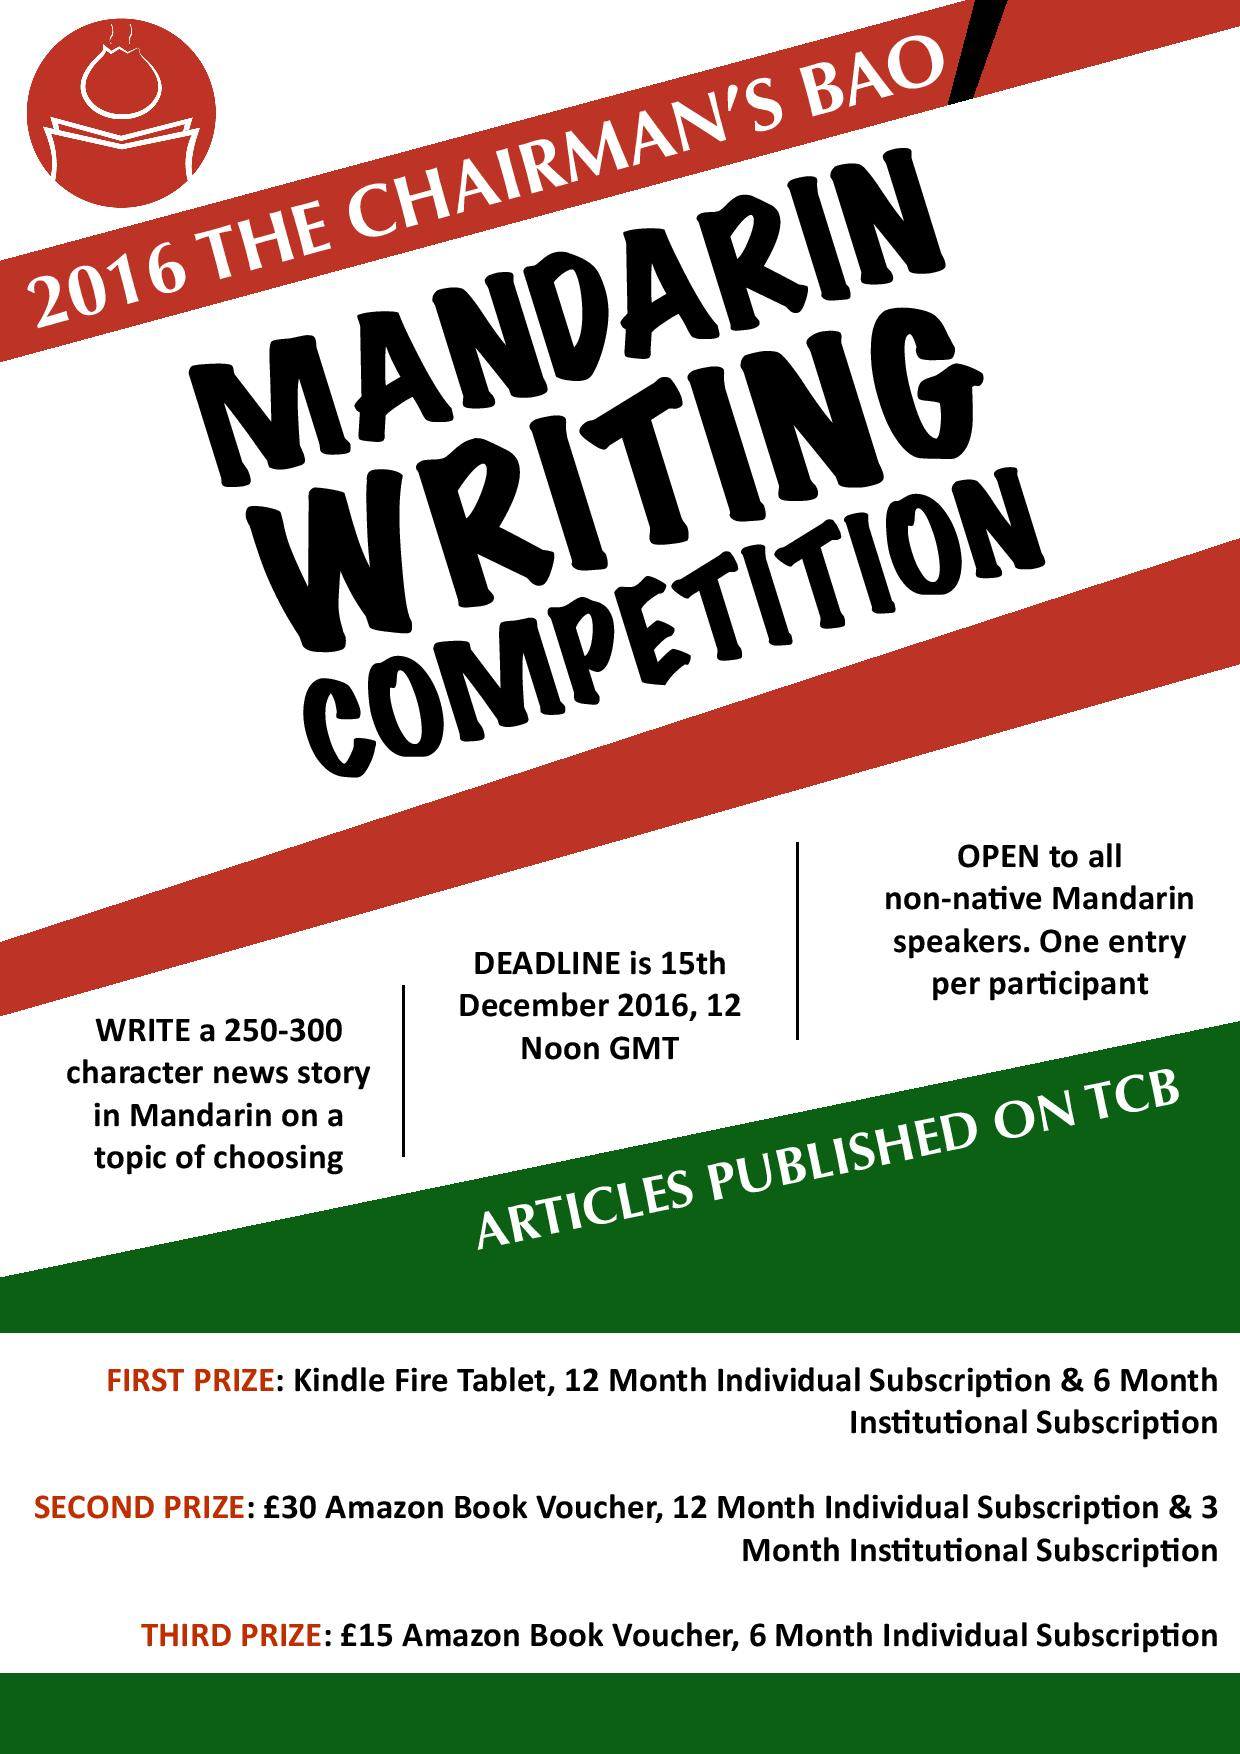 Winning Entries to the 2005 Essay Competition